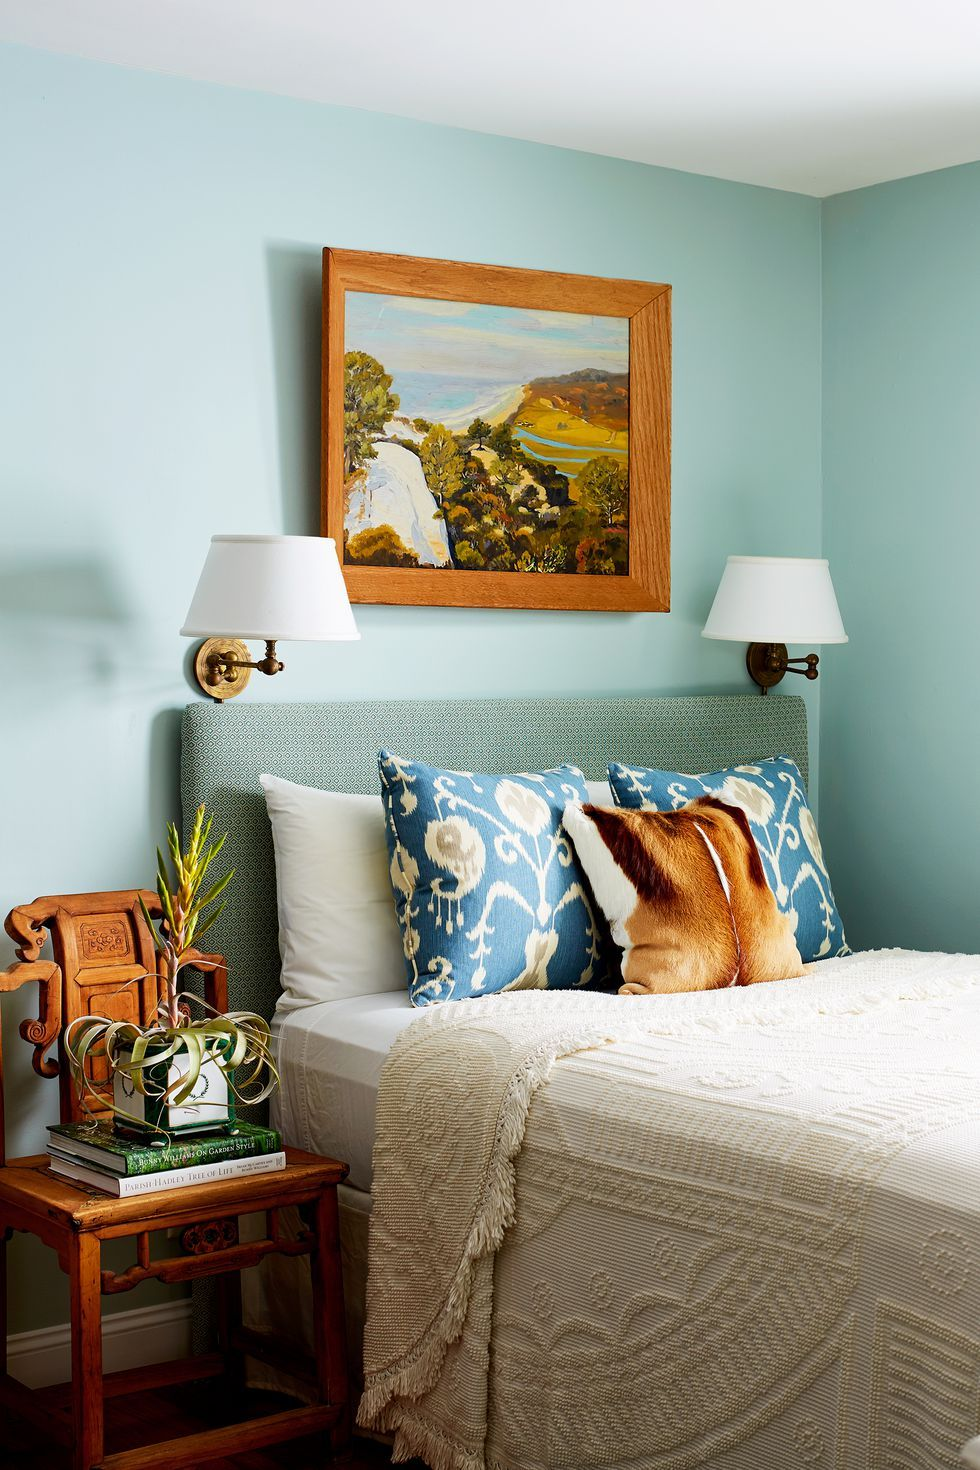 27 Best Bedroom Colors 2020 - Paint Color Ideas for Bedrooms on Bed Ideas For Small Rooms  id=73355